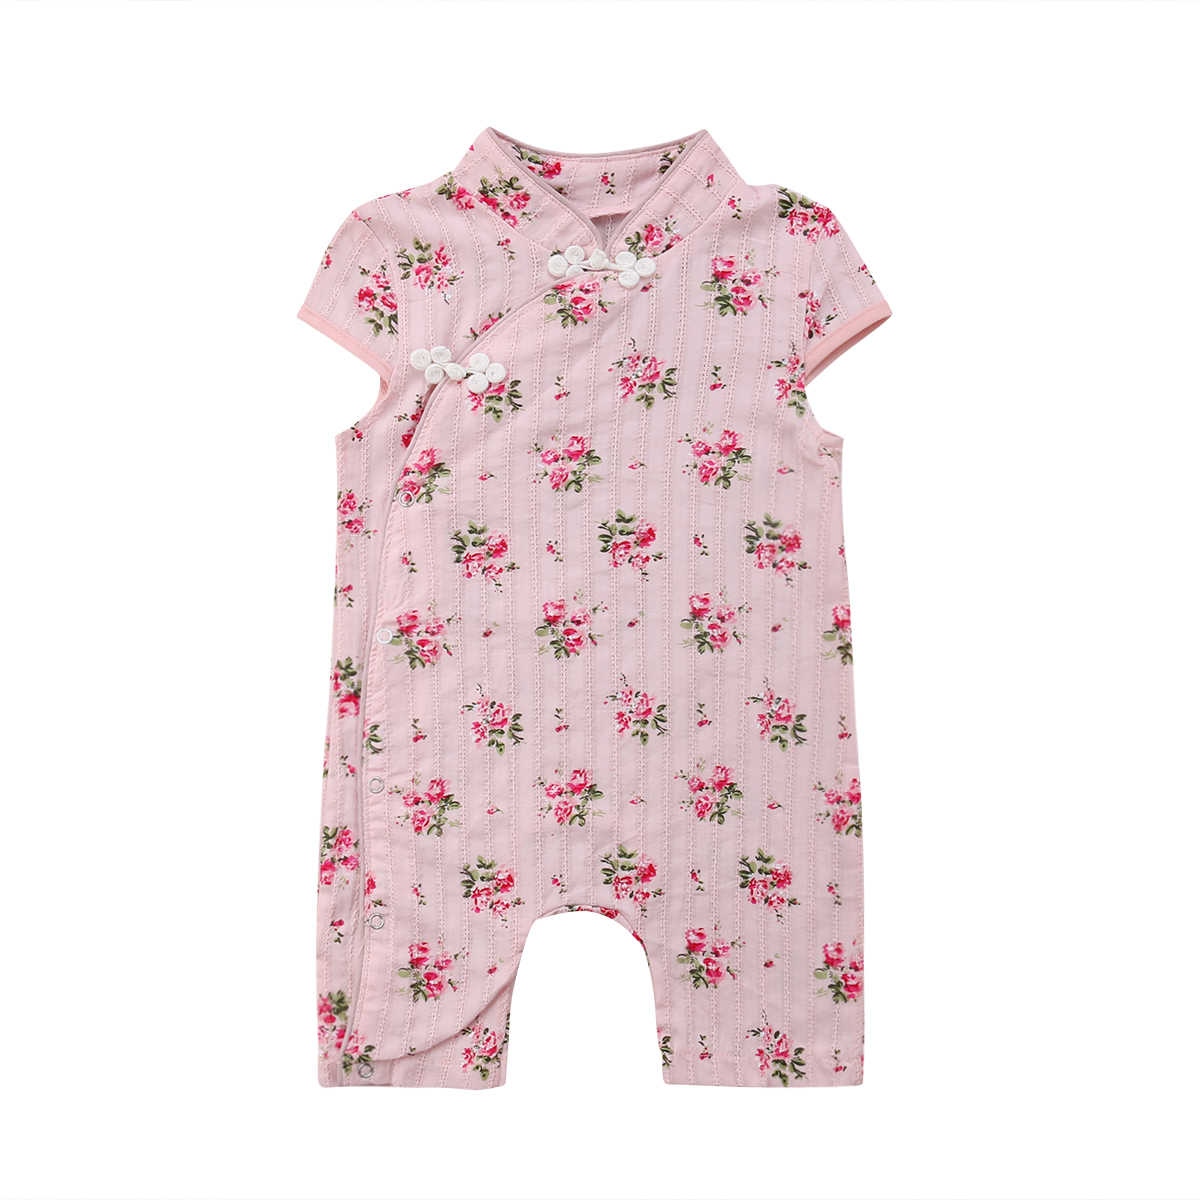 14fbda2a6033 Detail Feedback Questions about 2018 Fashion Newborn Baby Girl Floral  Romper Chinese Style Jumpsuit Summer Sunsuit Clothes Outfits 0 24M on  Aliexpress.com ...